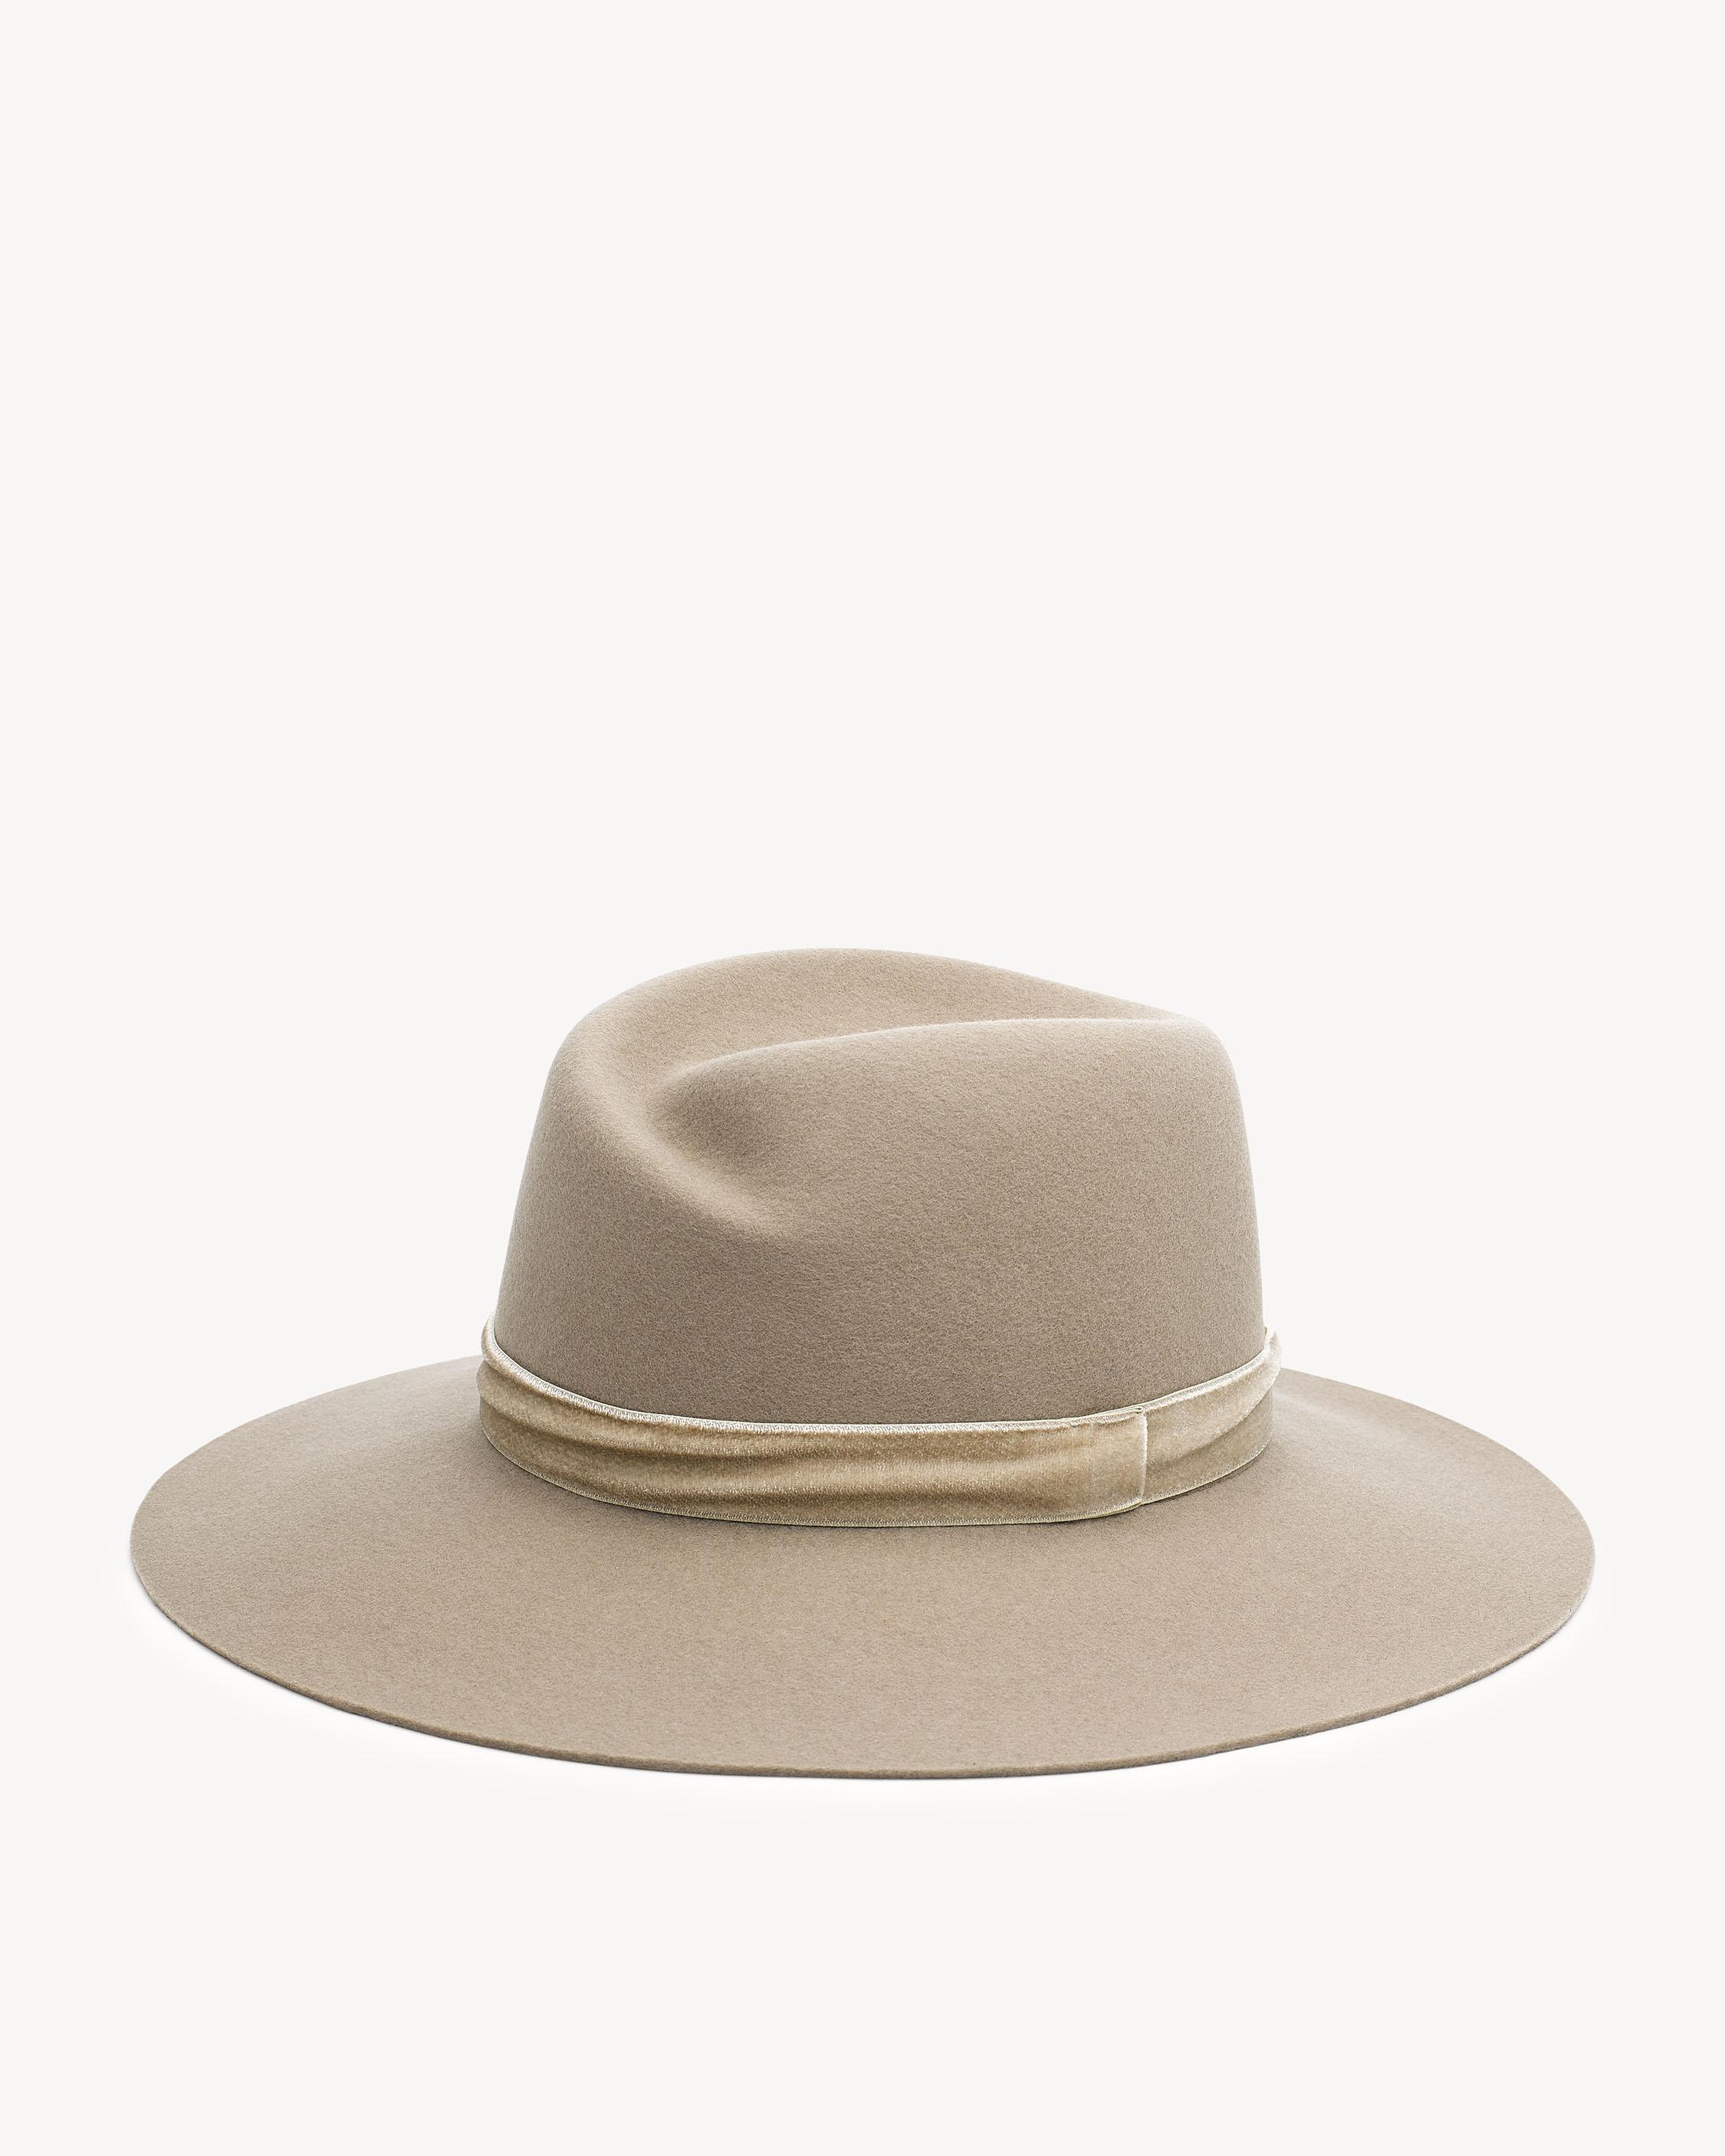 Rag   Bone Zoe Wool Fedora Hat - Save 1.0810810810810807% - Lyst 2b614149c4c7